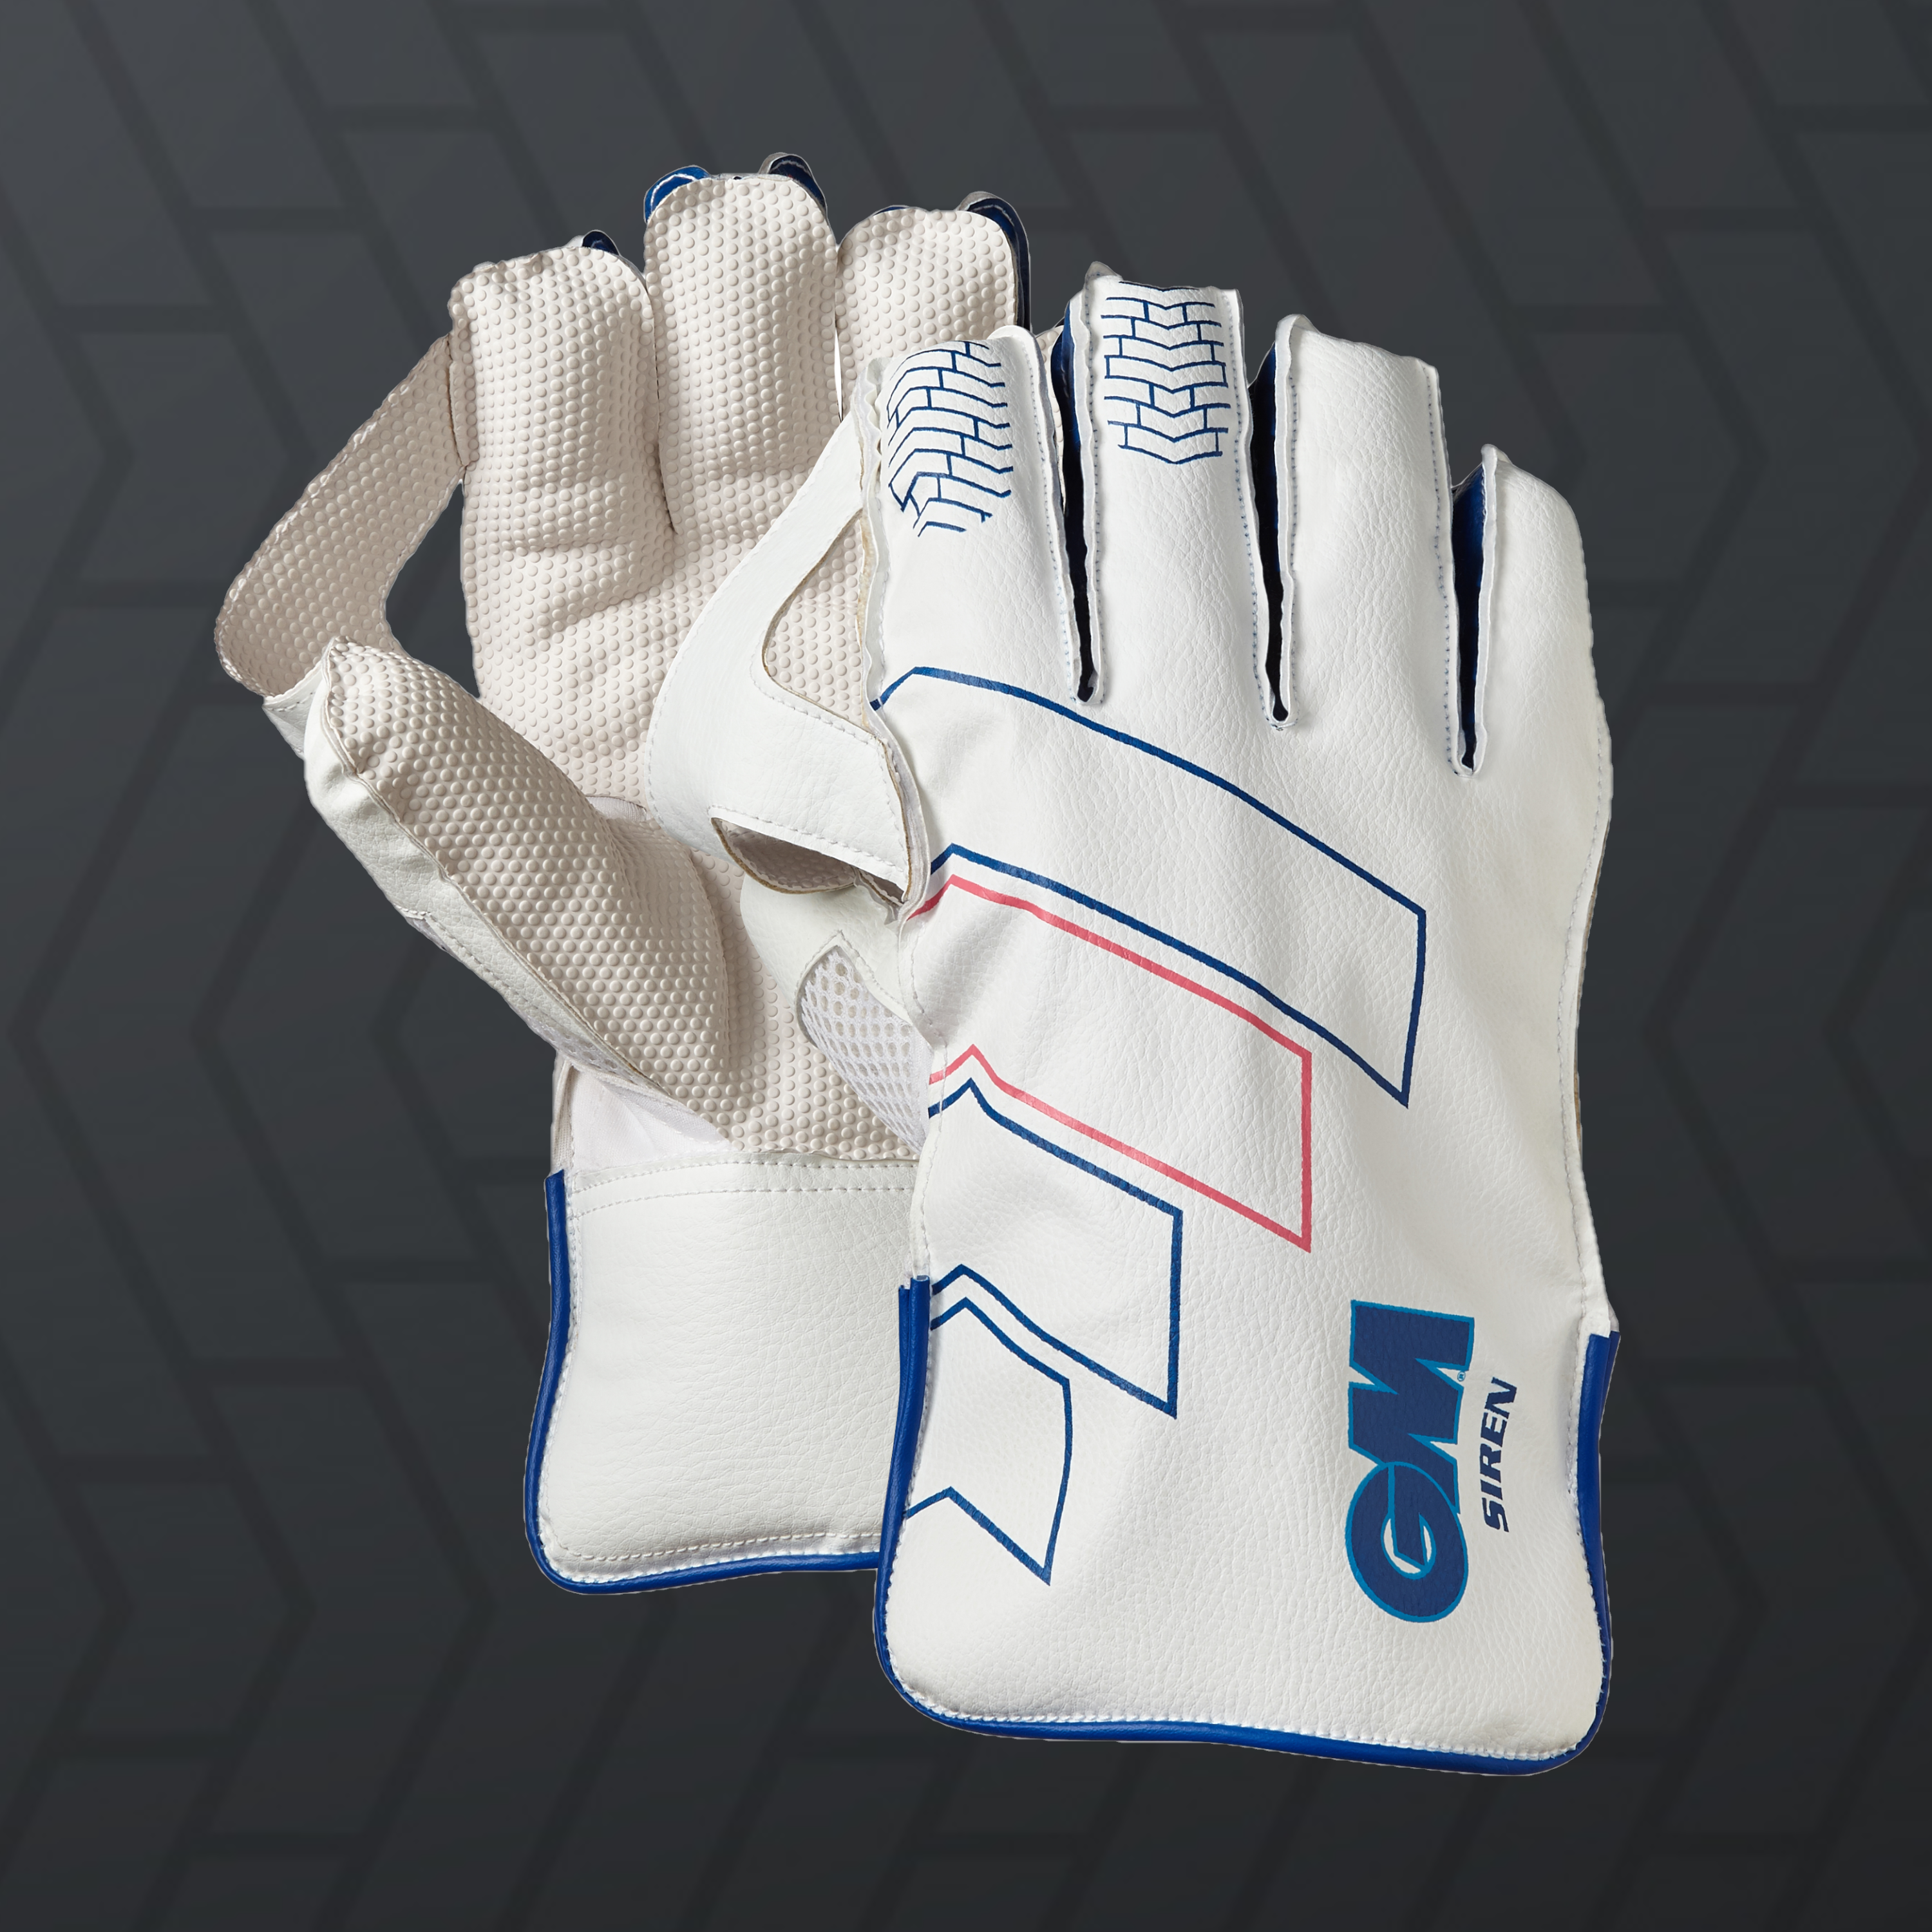 NEW 2020 Wicket Keeping Gloves - JUNIOR